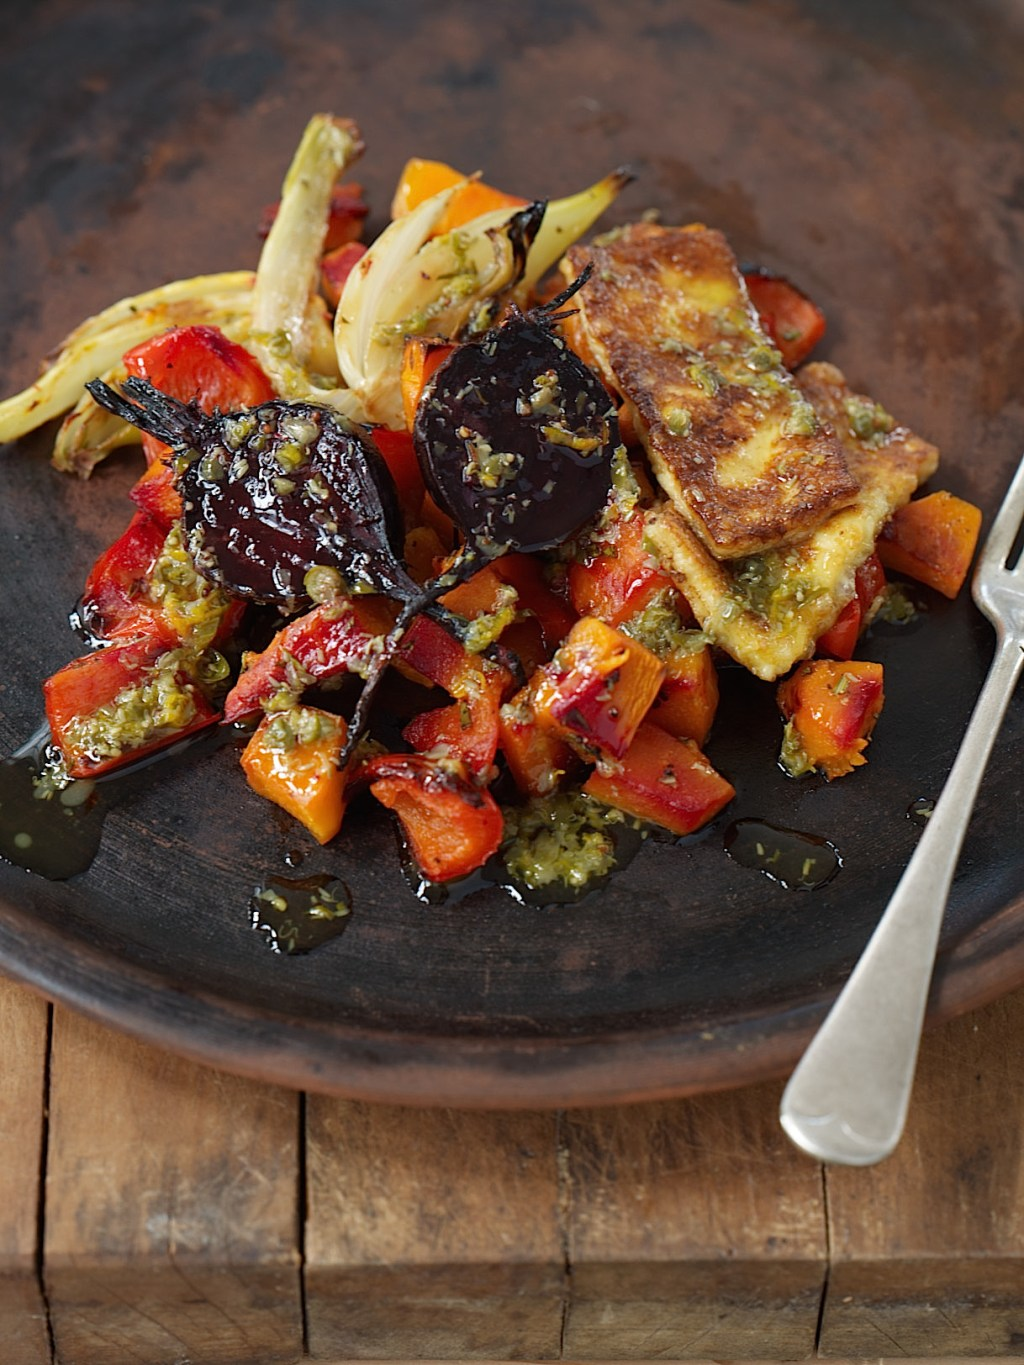 Baked vegetables w sizzled haloumi